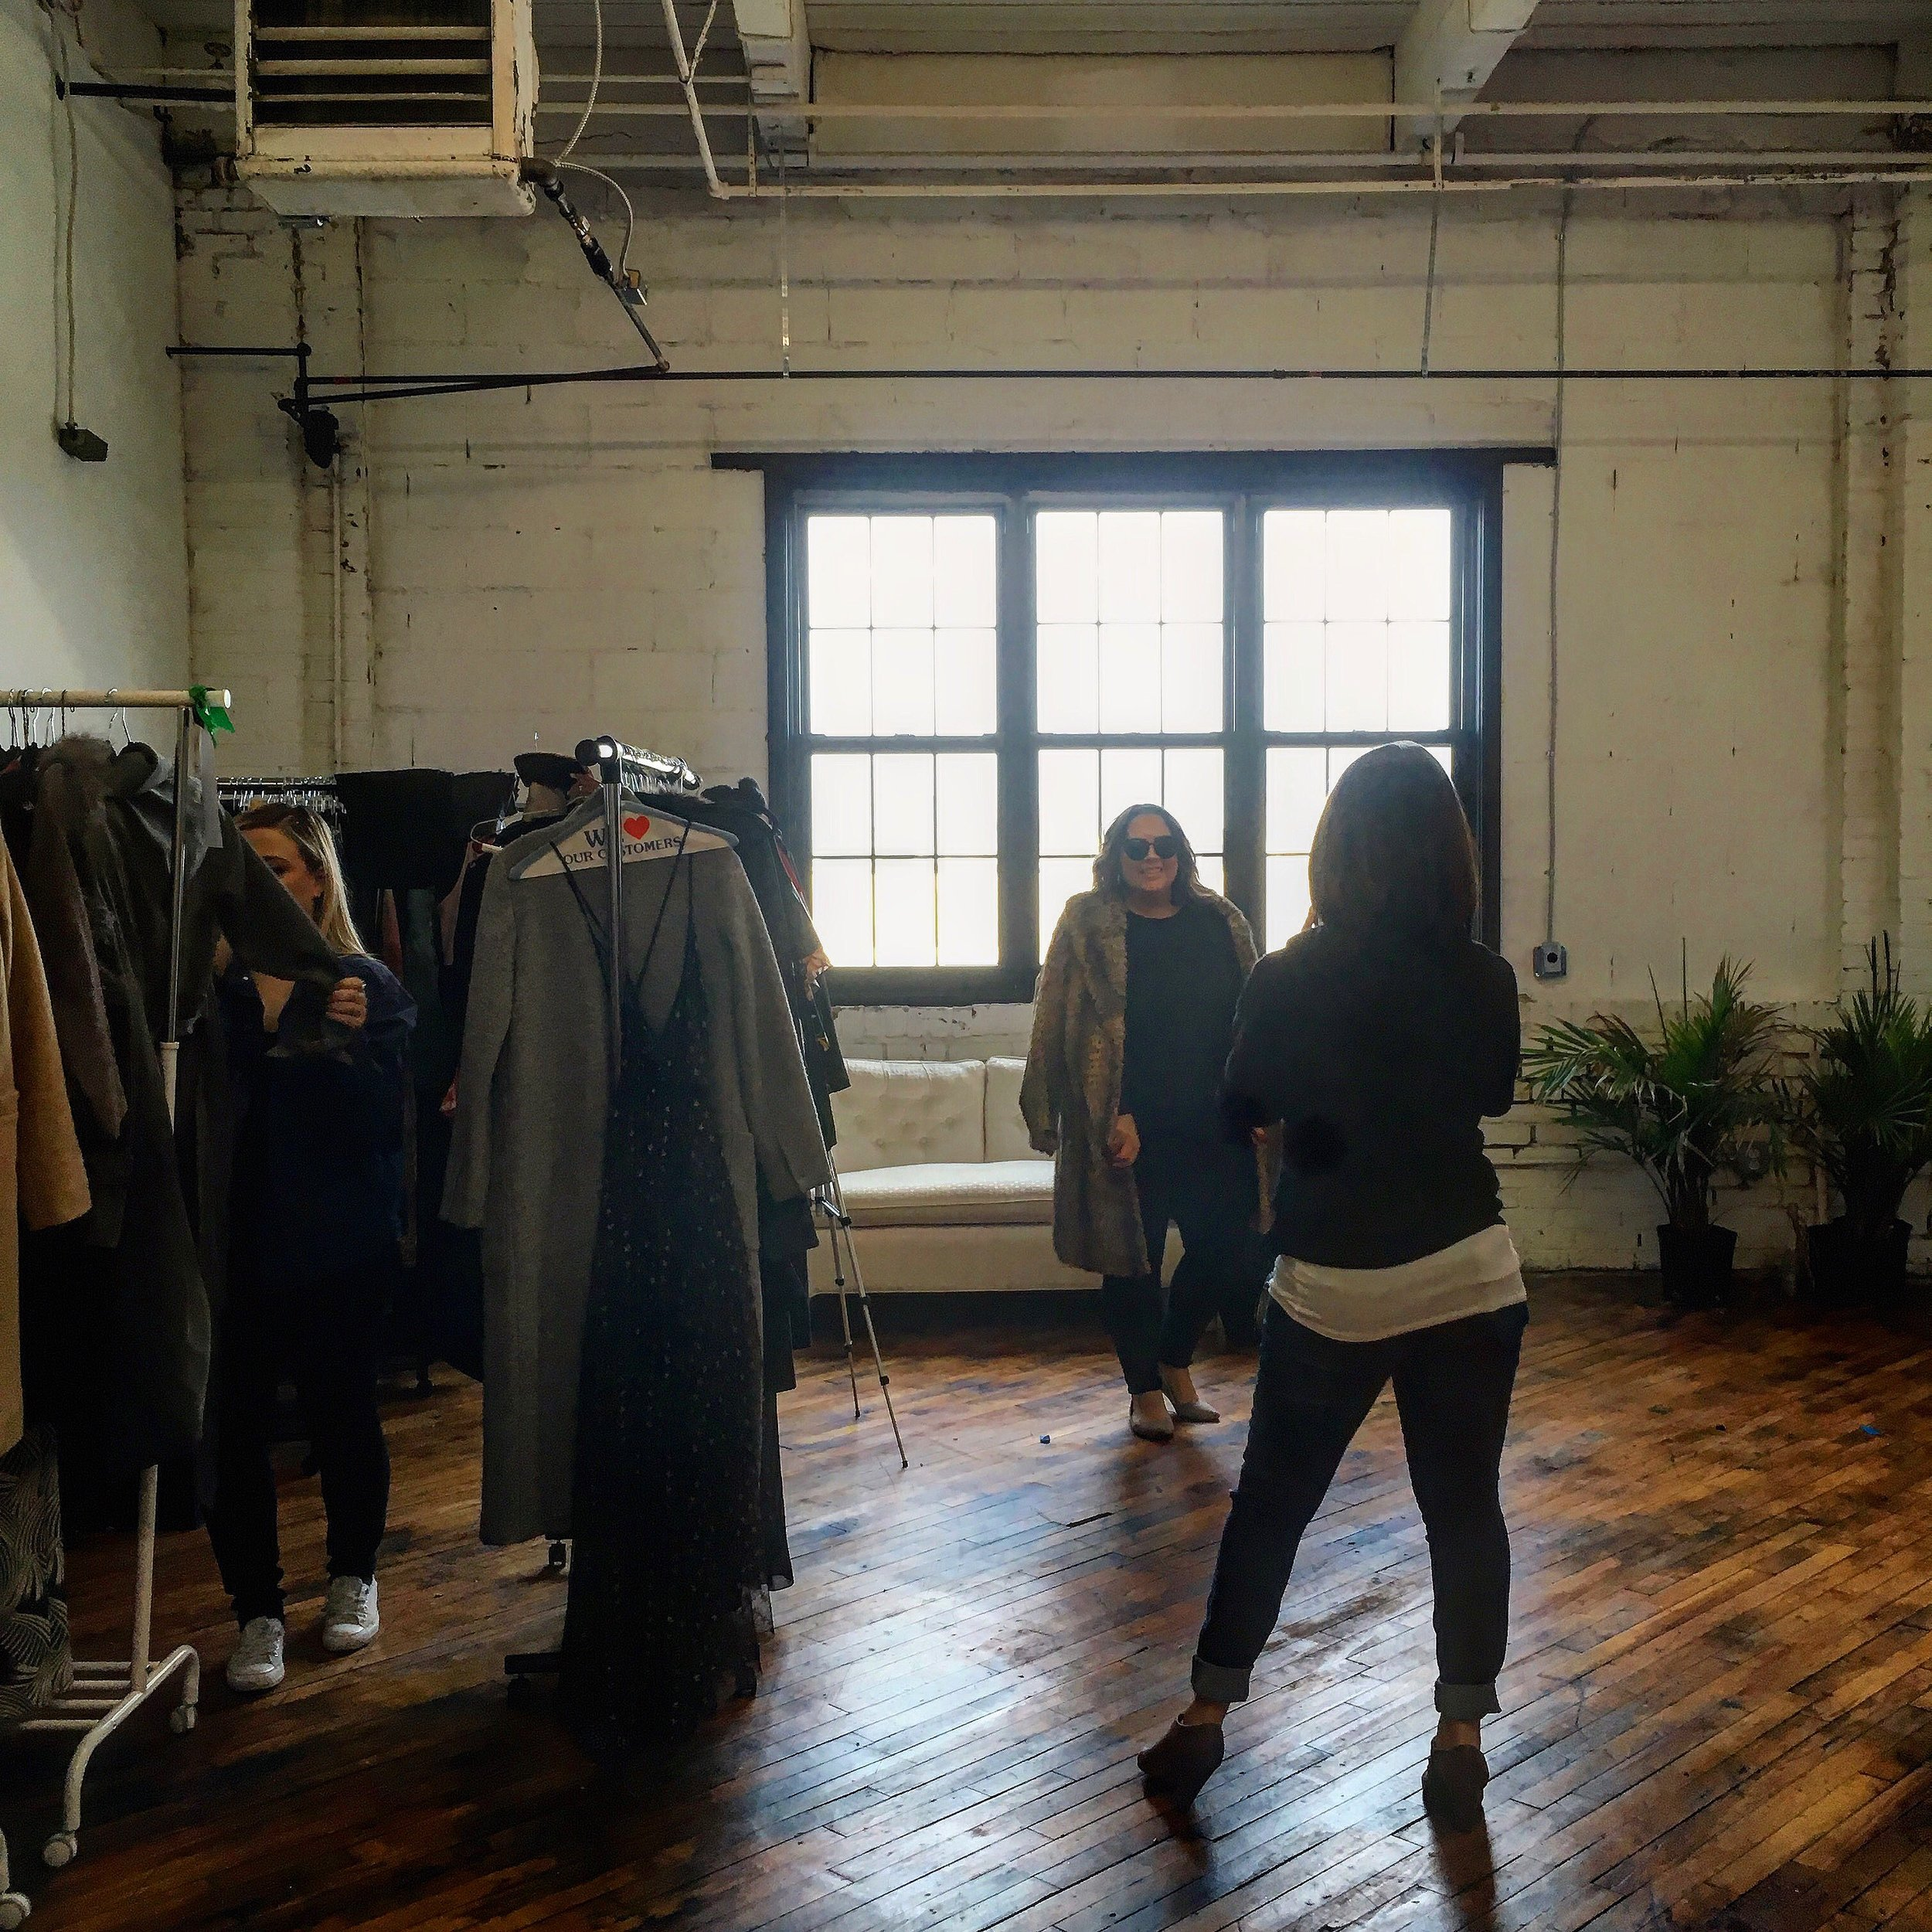 And We Evolve IS HEADQUARTERED IN THE CITY OF SISTERLY LOVE - And We Evolve is owned and operated by a small but mighty girl gang of women who are passionate about style, environmental sustainability, entrepreneurship, and delivering highly useful/ helpful products and services.And We Evolve is headquartered in Philadelphia, PA, in a quirky loft space in a rehabilitated warehouse building. Do you long for the days when [insert city/ borough/ neighborhood] was affordable and had big, open spaces for artists and entrepreneurs to spread out? Come to Philadelphia!You can learn more about Philadelphia's vibrant community of entrepreneurs and growing companies at Philadelphia Startup Leaders. Philadelphia is also emerging as a sustainable fashion hub. Learn more about our friends at Wearwell, Alice Alexander, Lobo Mau, and Heyne Bogut.Interested in learning more? Drop us a line at hello@andweevolve.com.